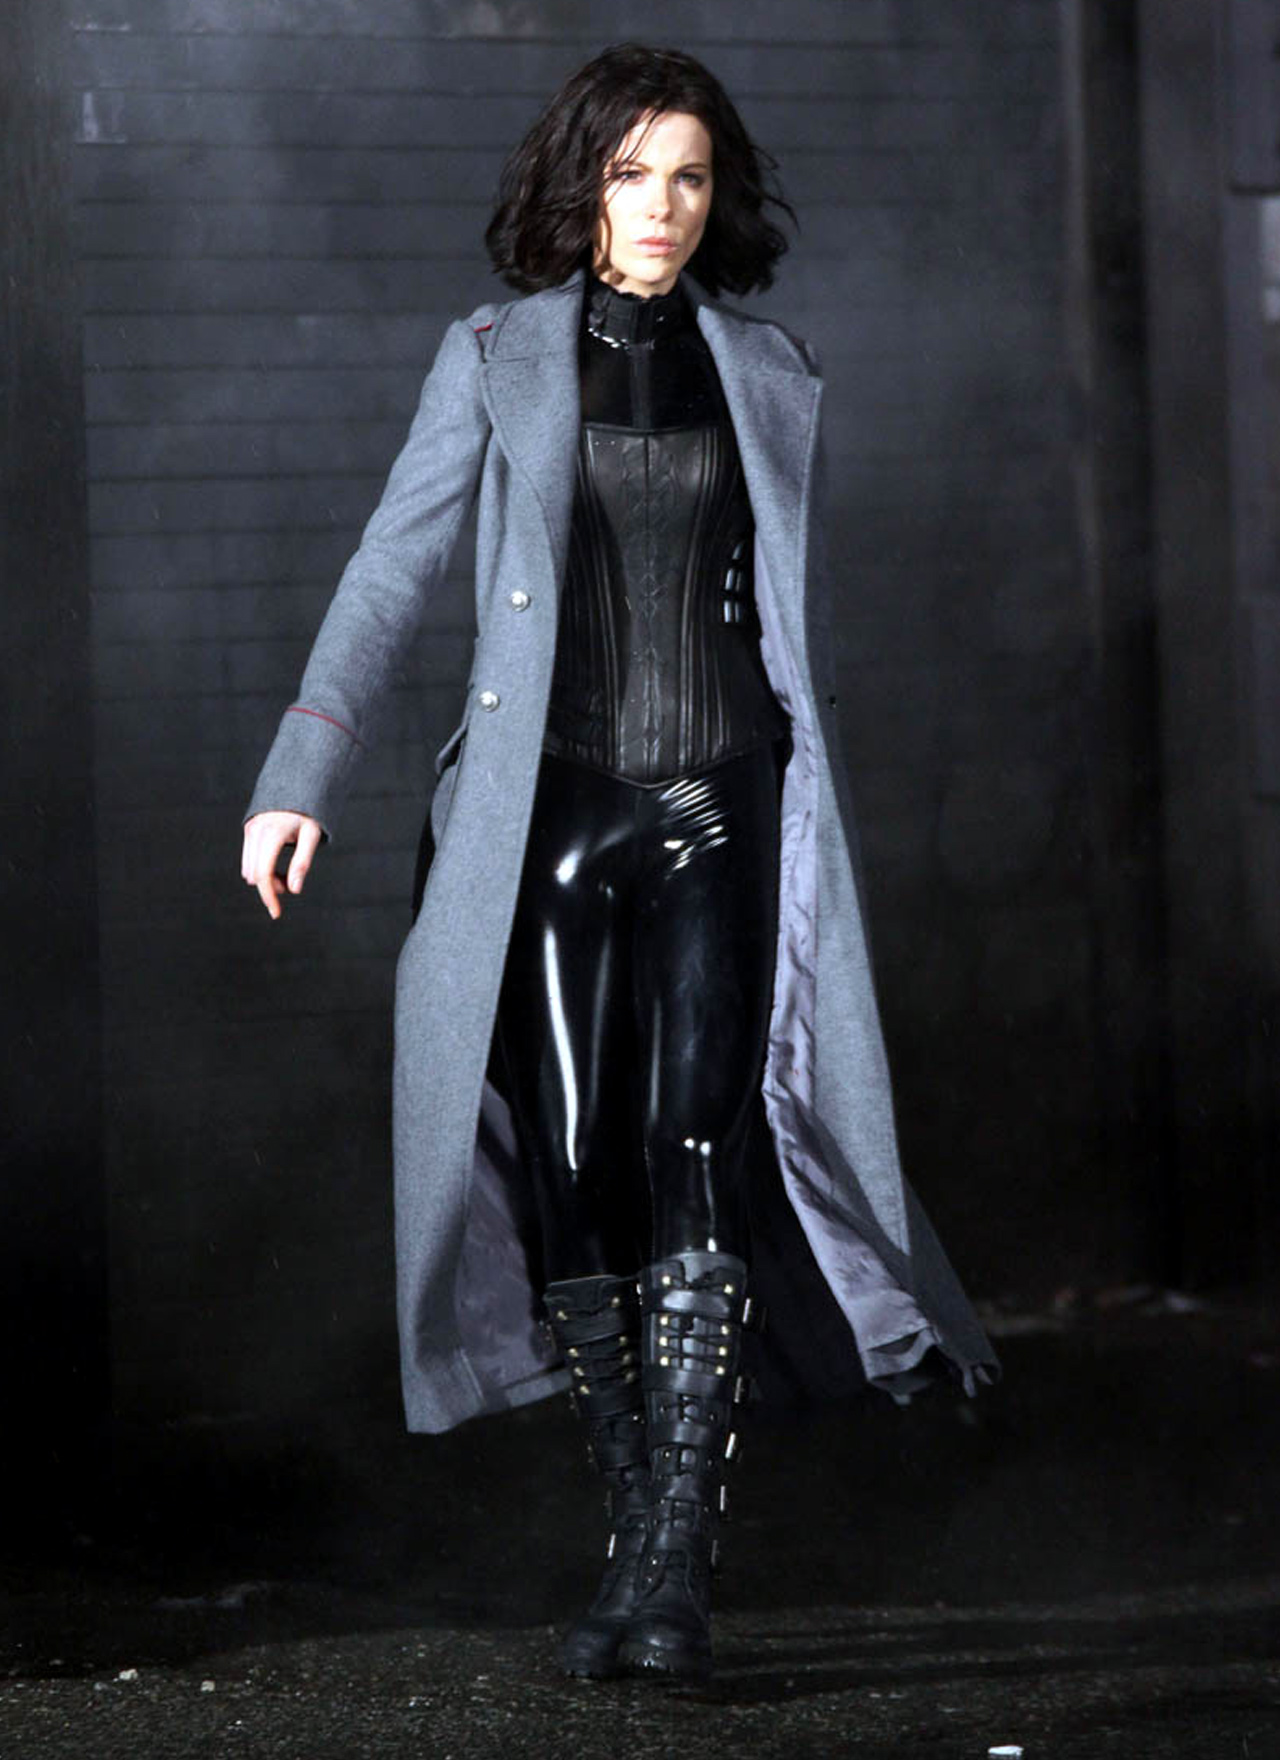 Kate-Beckinsale-in-Selene-Costume.jpg